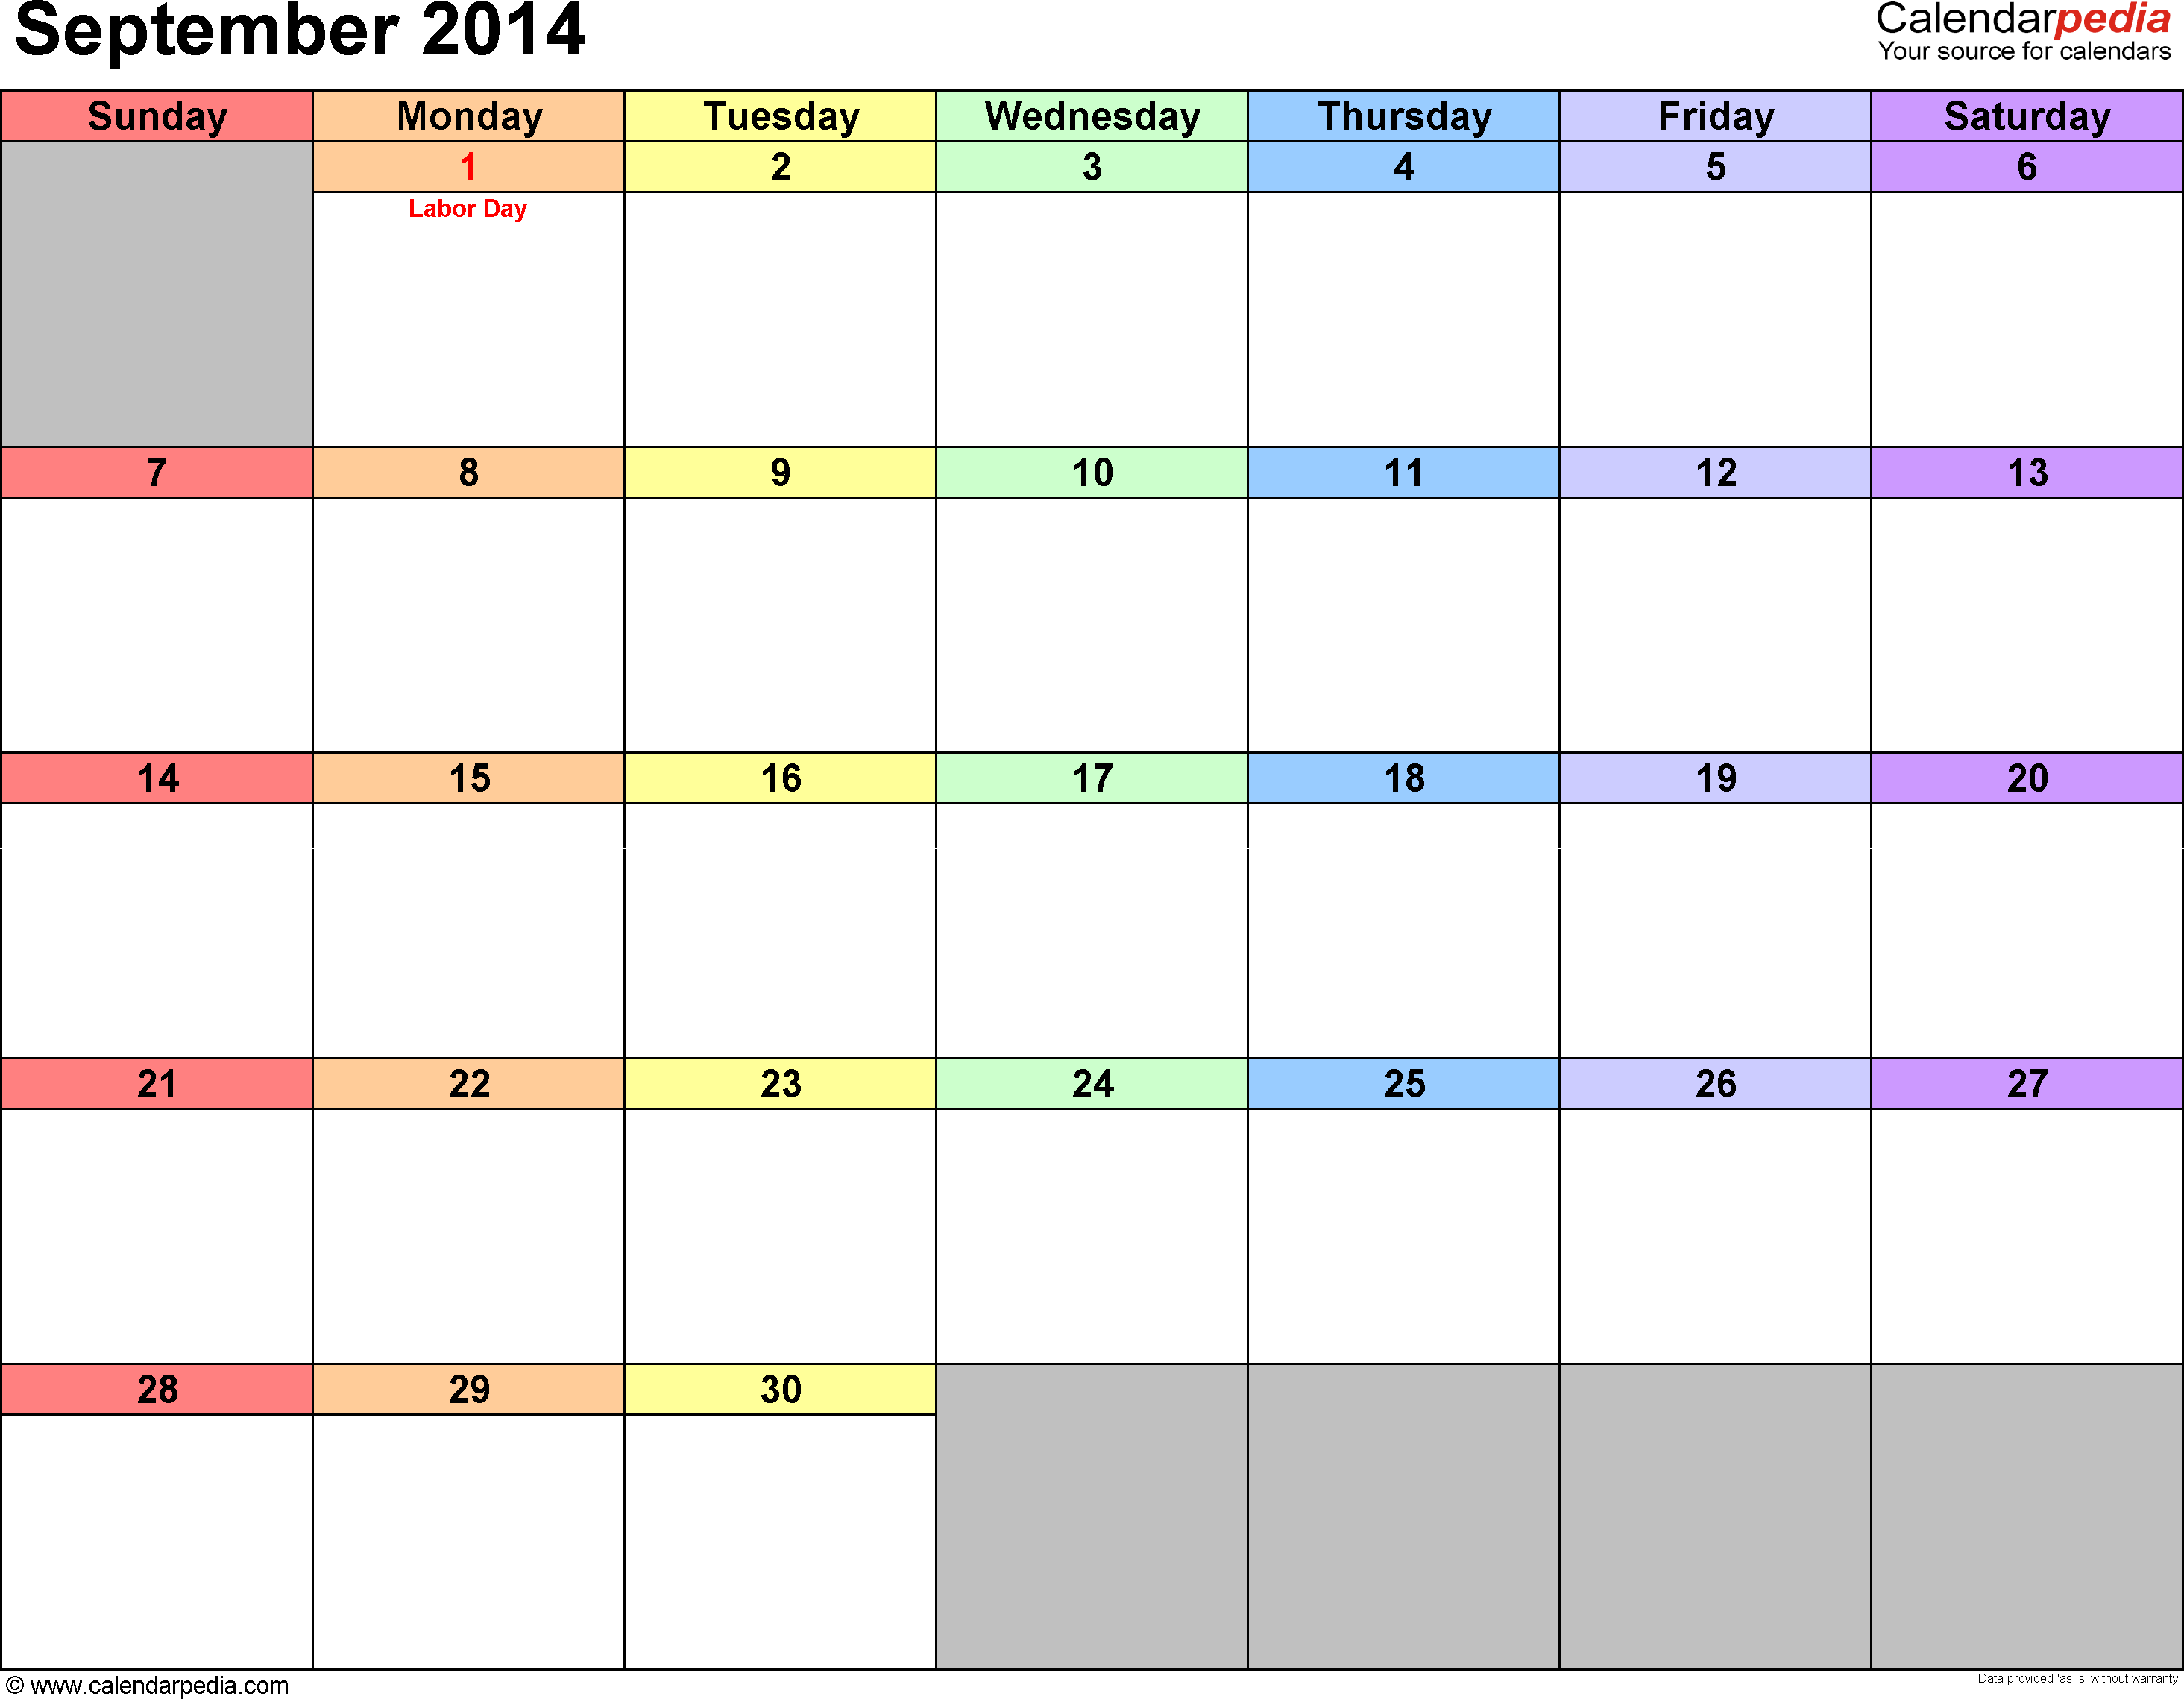 September 2014 calendar printable template